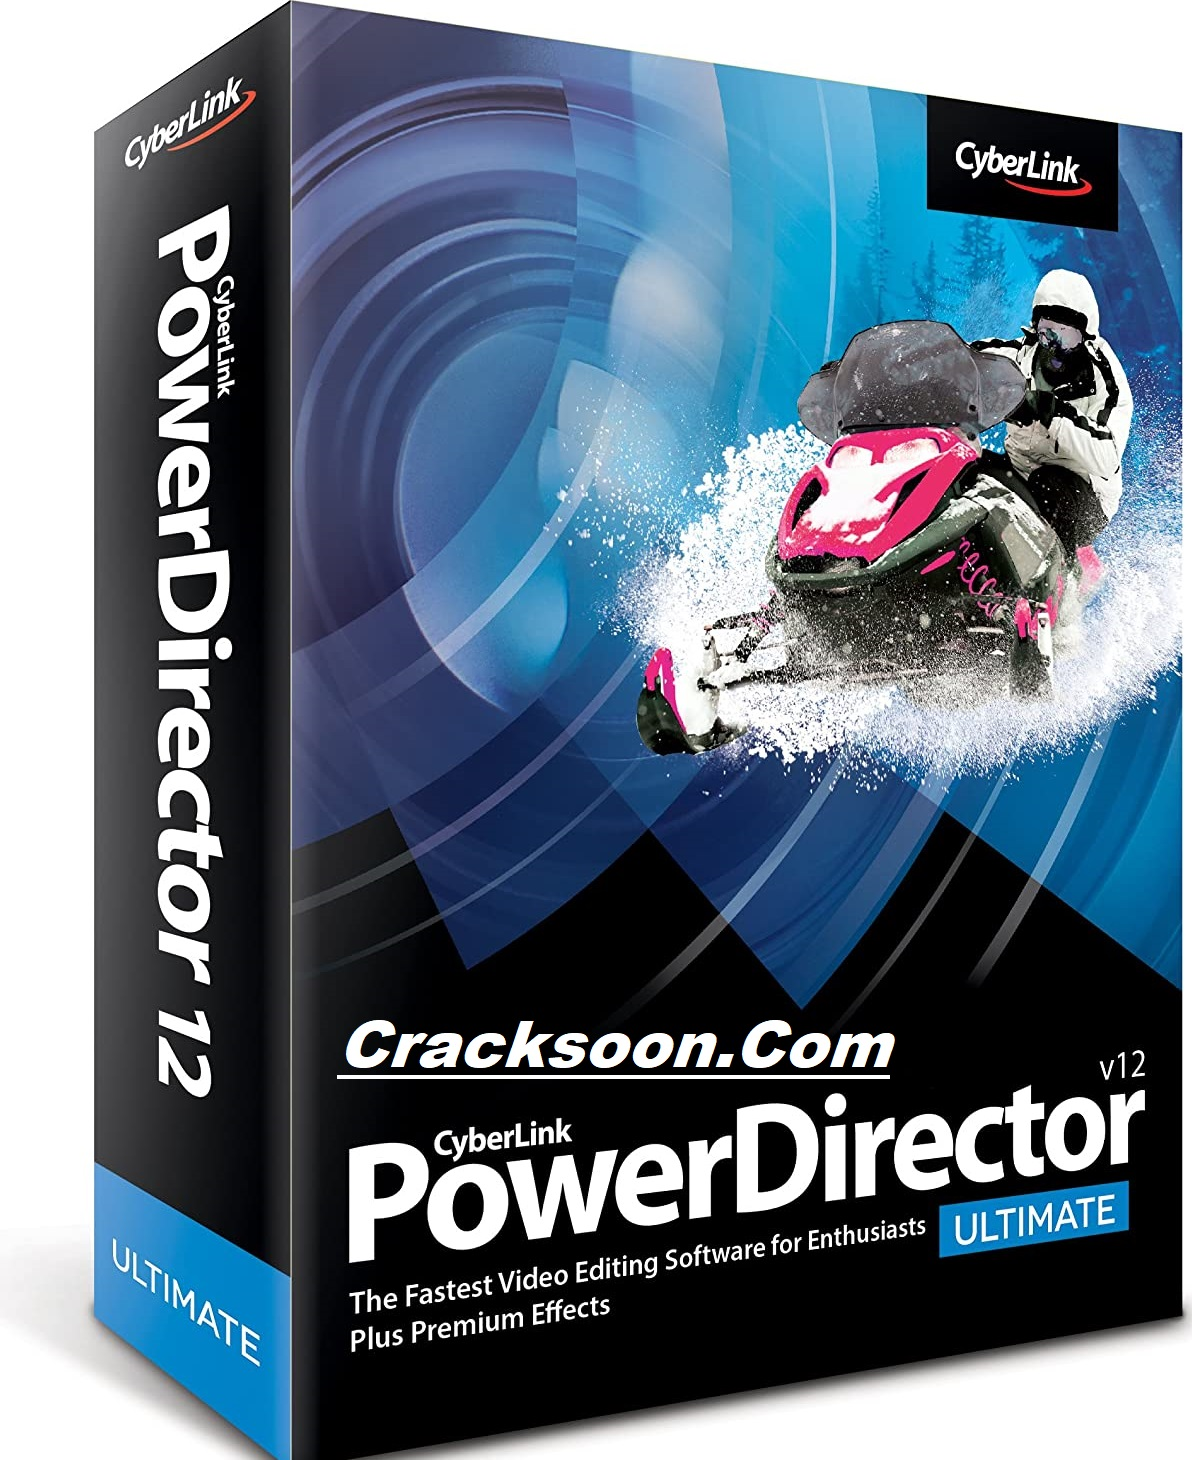 Cyberlink PowerDirector 19.1.2407.0 Crack Incl Keygen Free (Latest 2021)